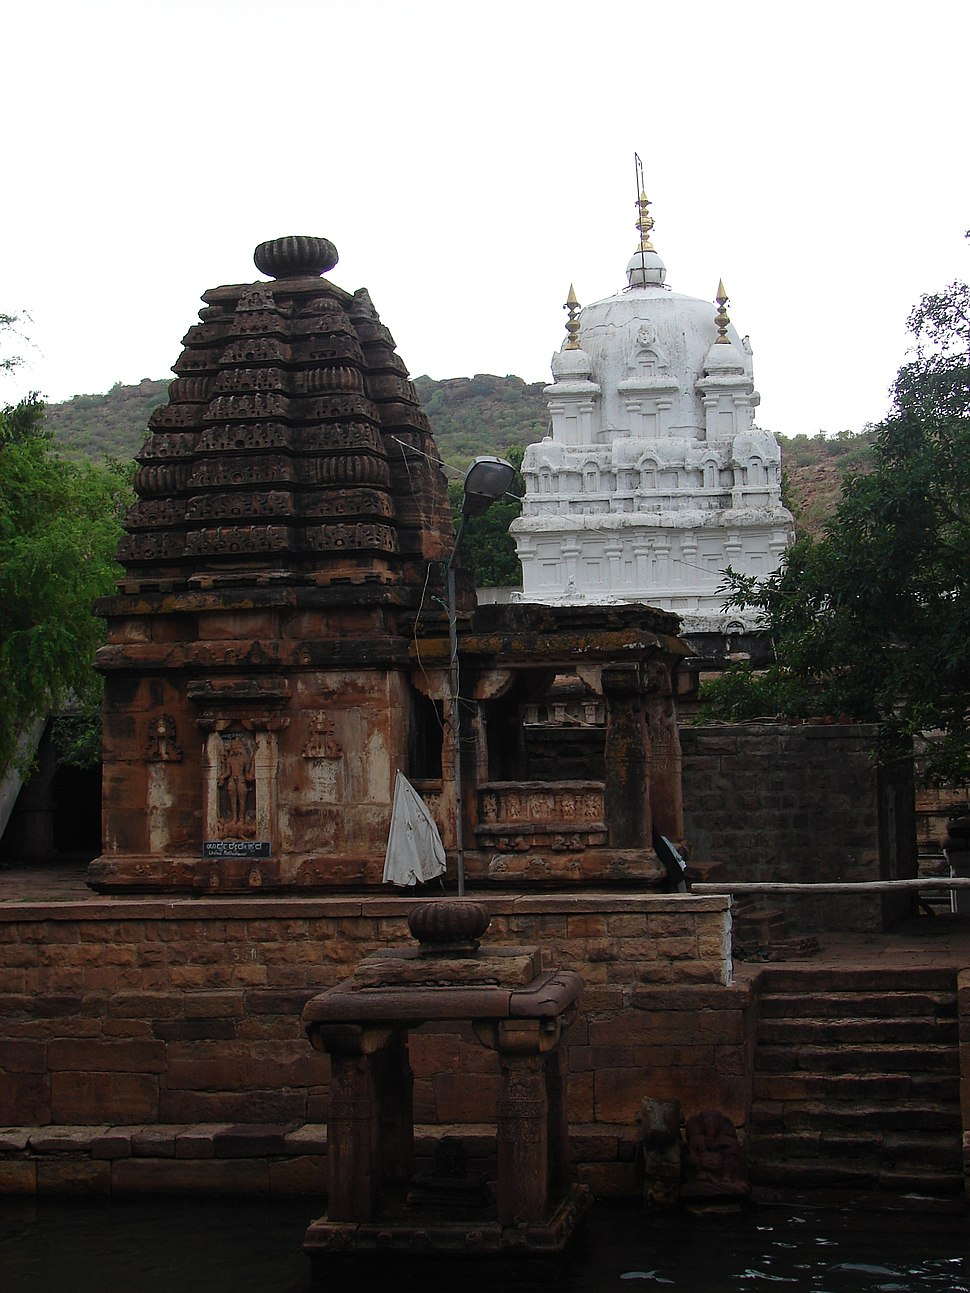 Mahakuta group of temples at Mahakuta